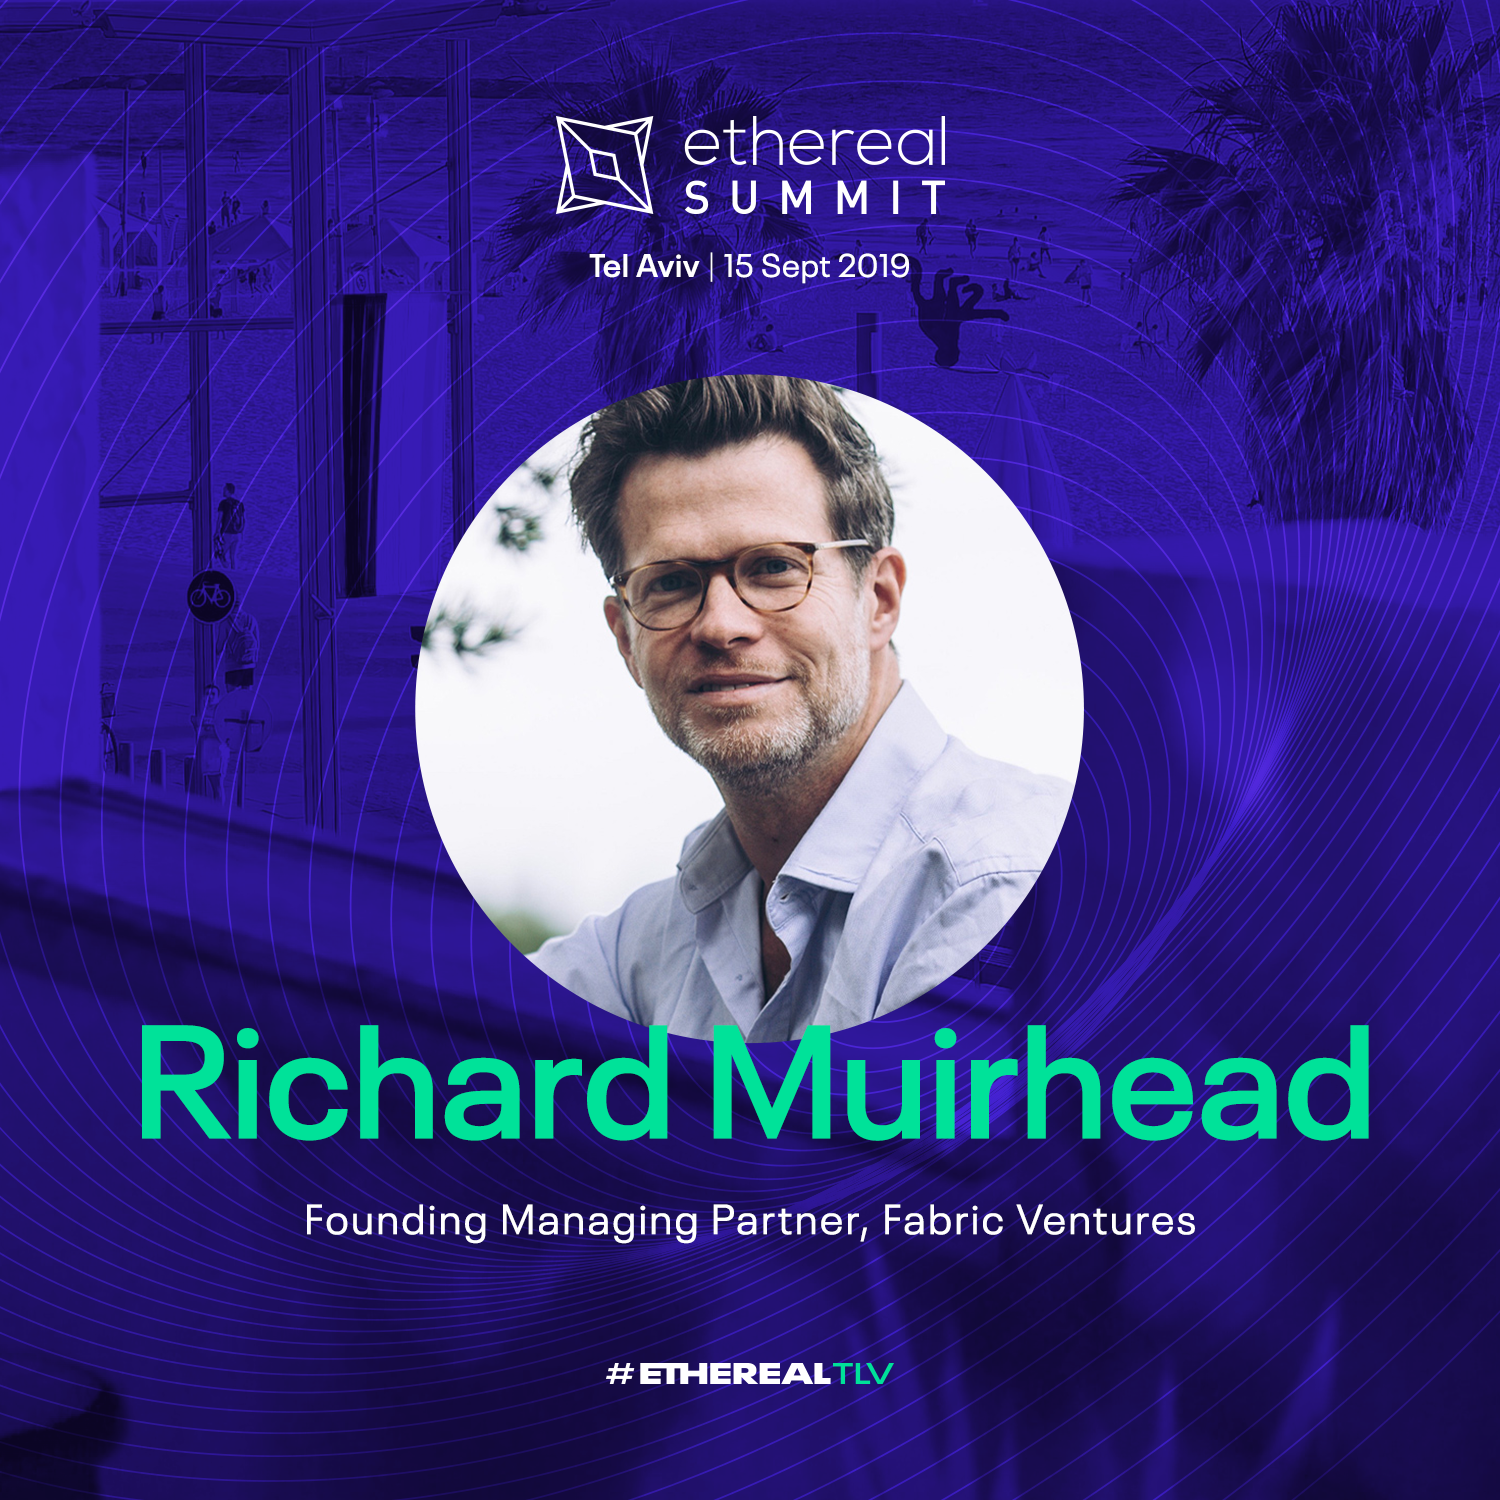 ethereal-tlv-2019-speaker-cards-square-richard-muirhead.png